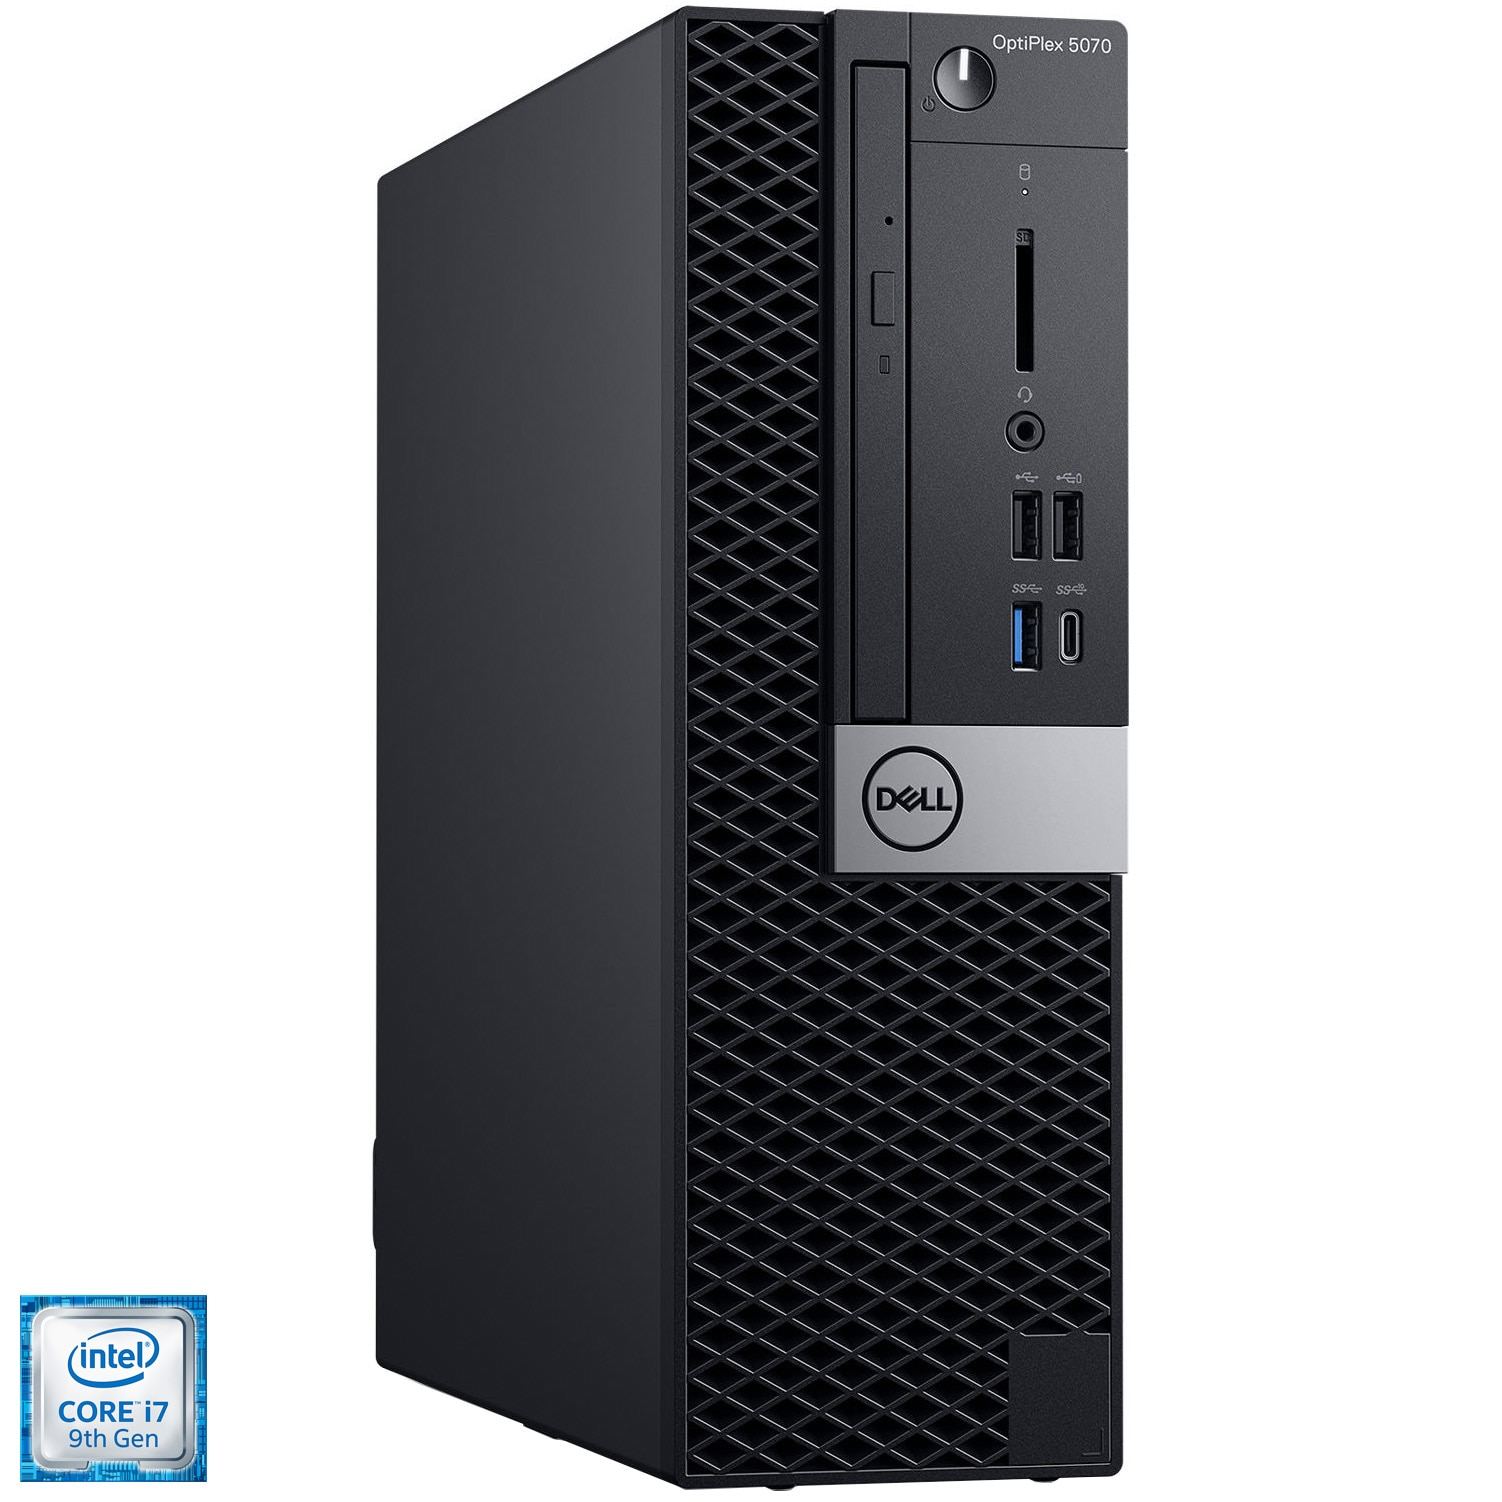 Fotografie Sistem Desktop PC Dell OptiPlex 5070 SFF cu procesor Intel® Core™ i7-9700 pana la 4.70 GHz, Coffee Lake, 16GB DDR4, 256GB SSD, Intel® UHD Graphics 630, Microsoft Windows 10 Pro